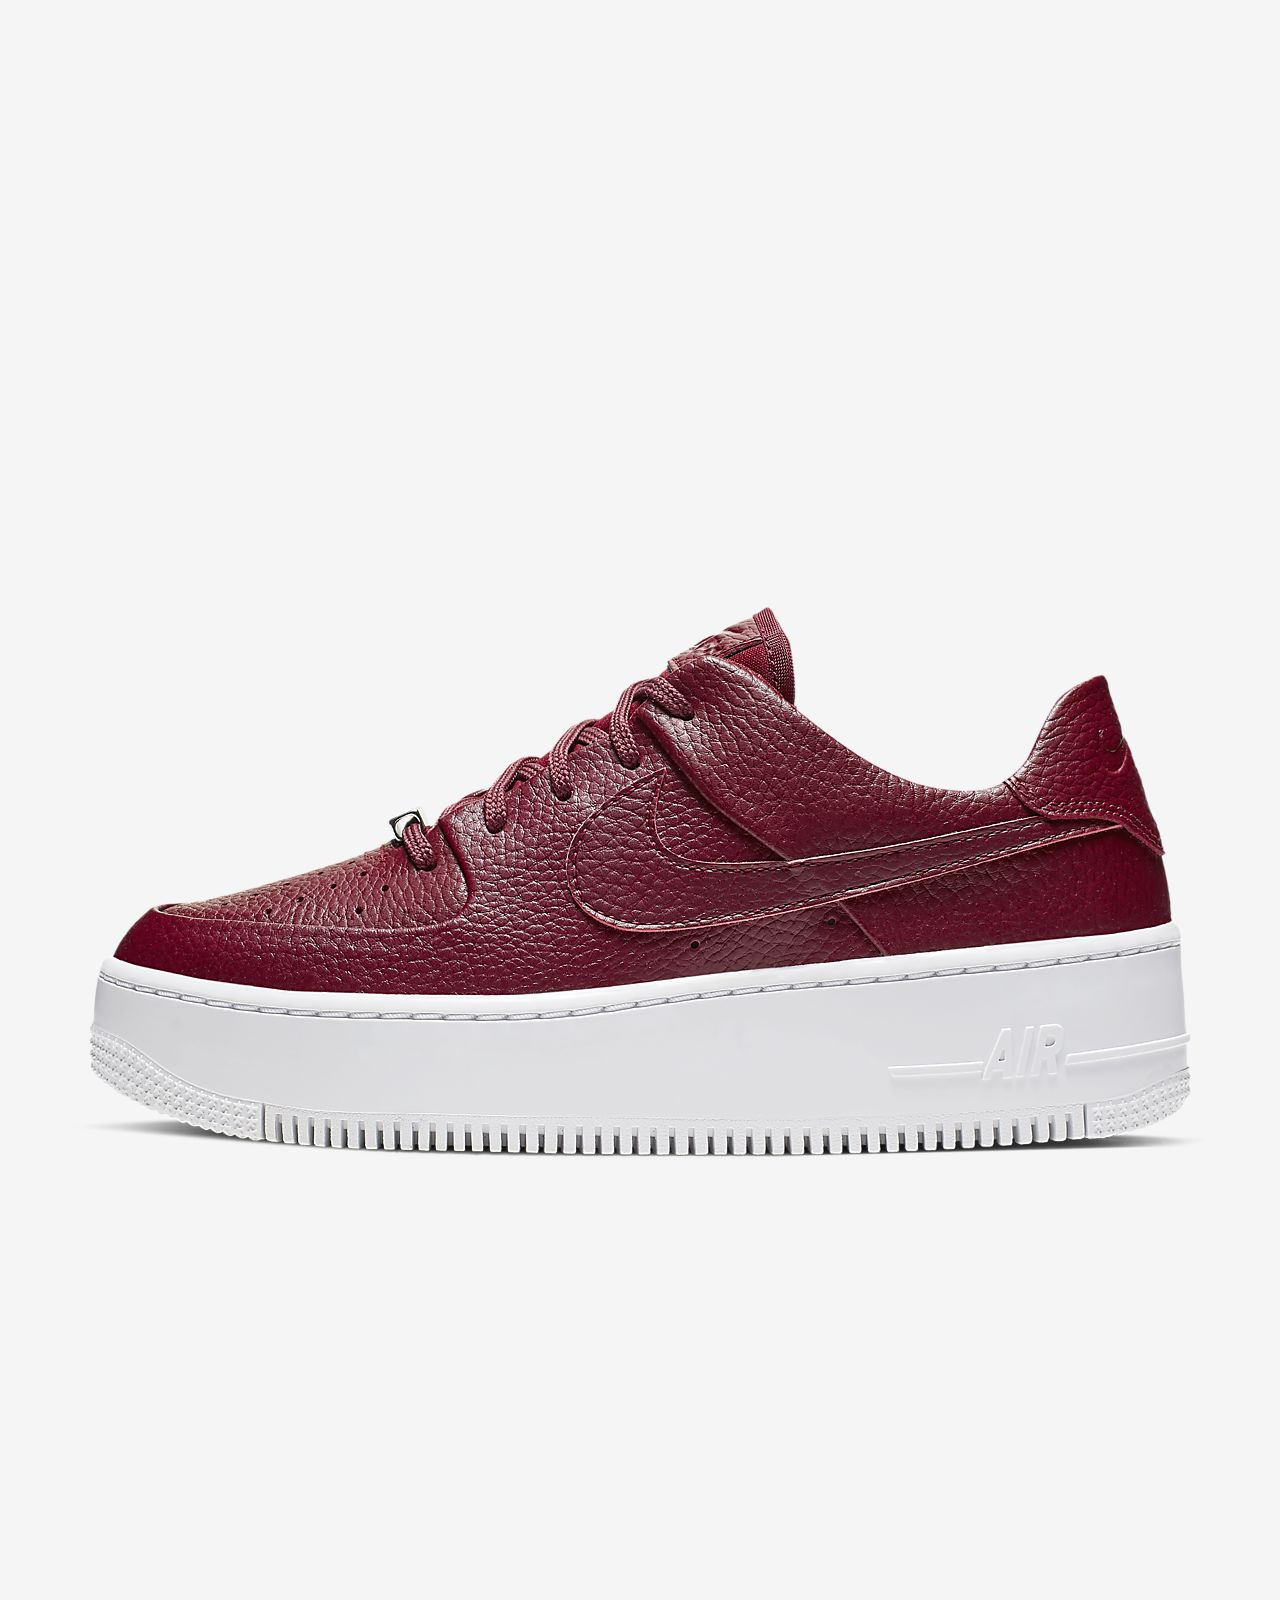 Chaussure Nike Air Force 1 Sage Low pour Femme